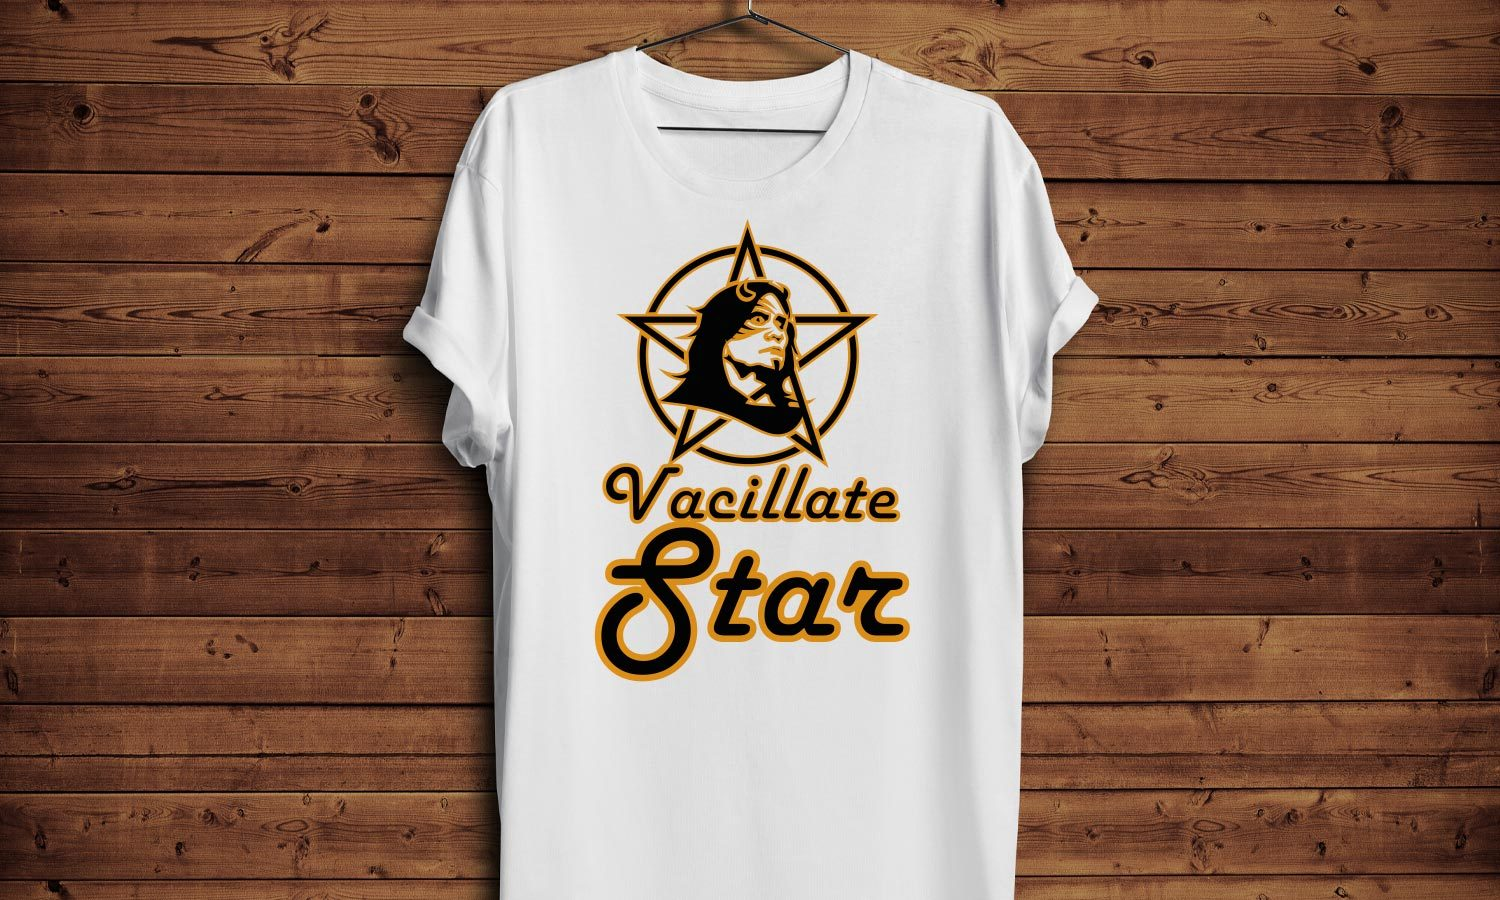 Vacillate Star - Printed T-Shirt for Men, Women and Kids - TS257